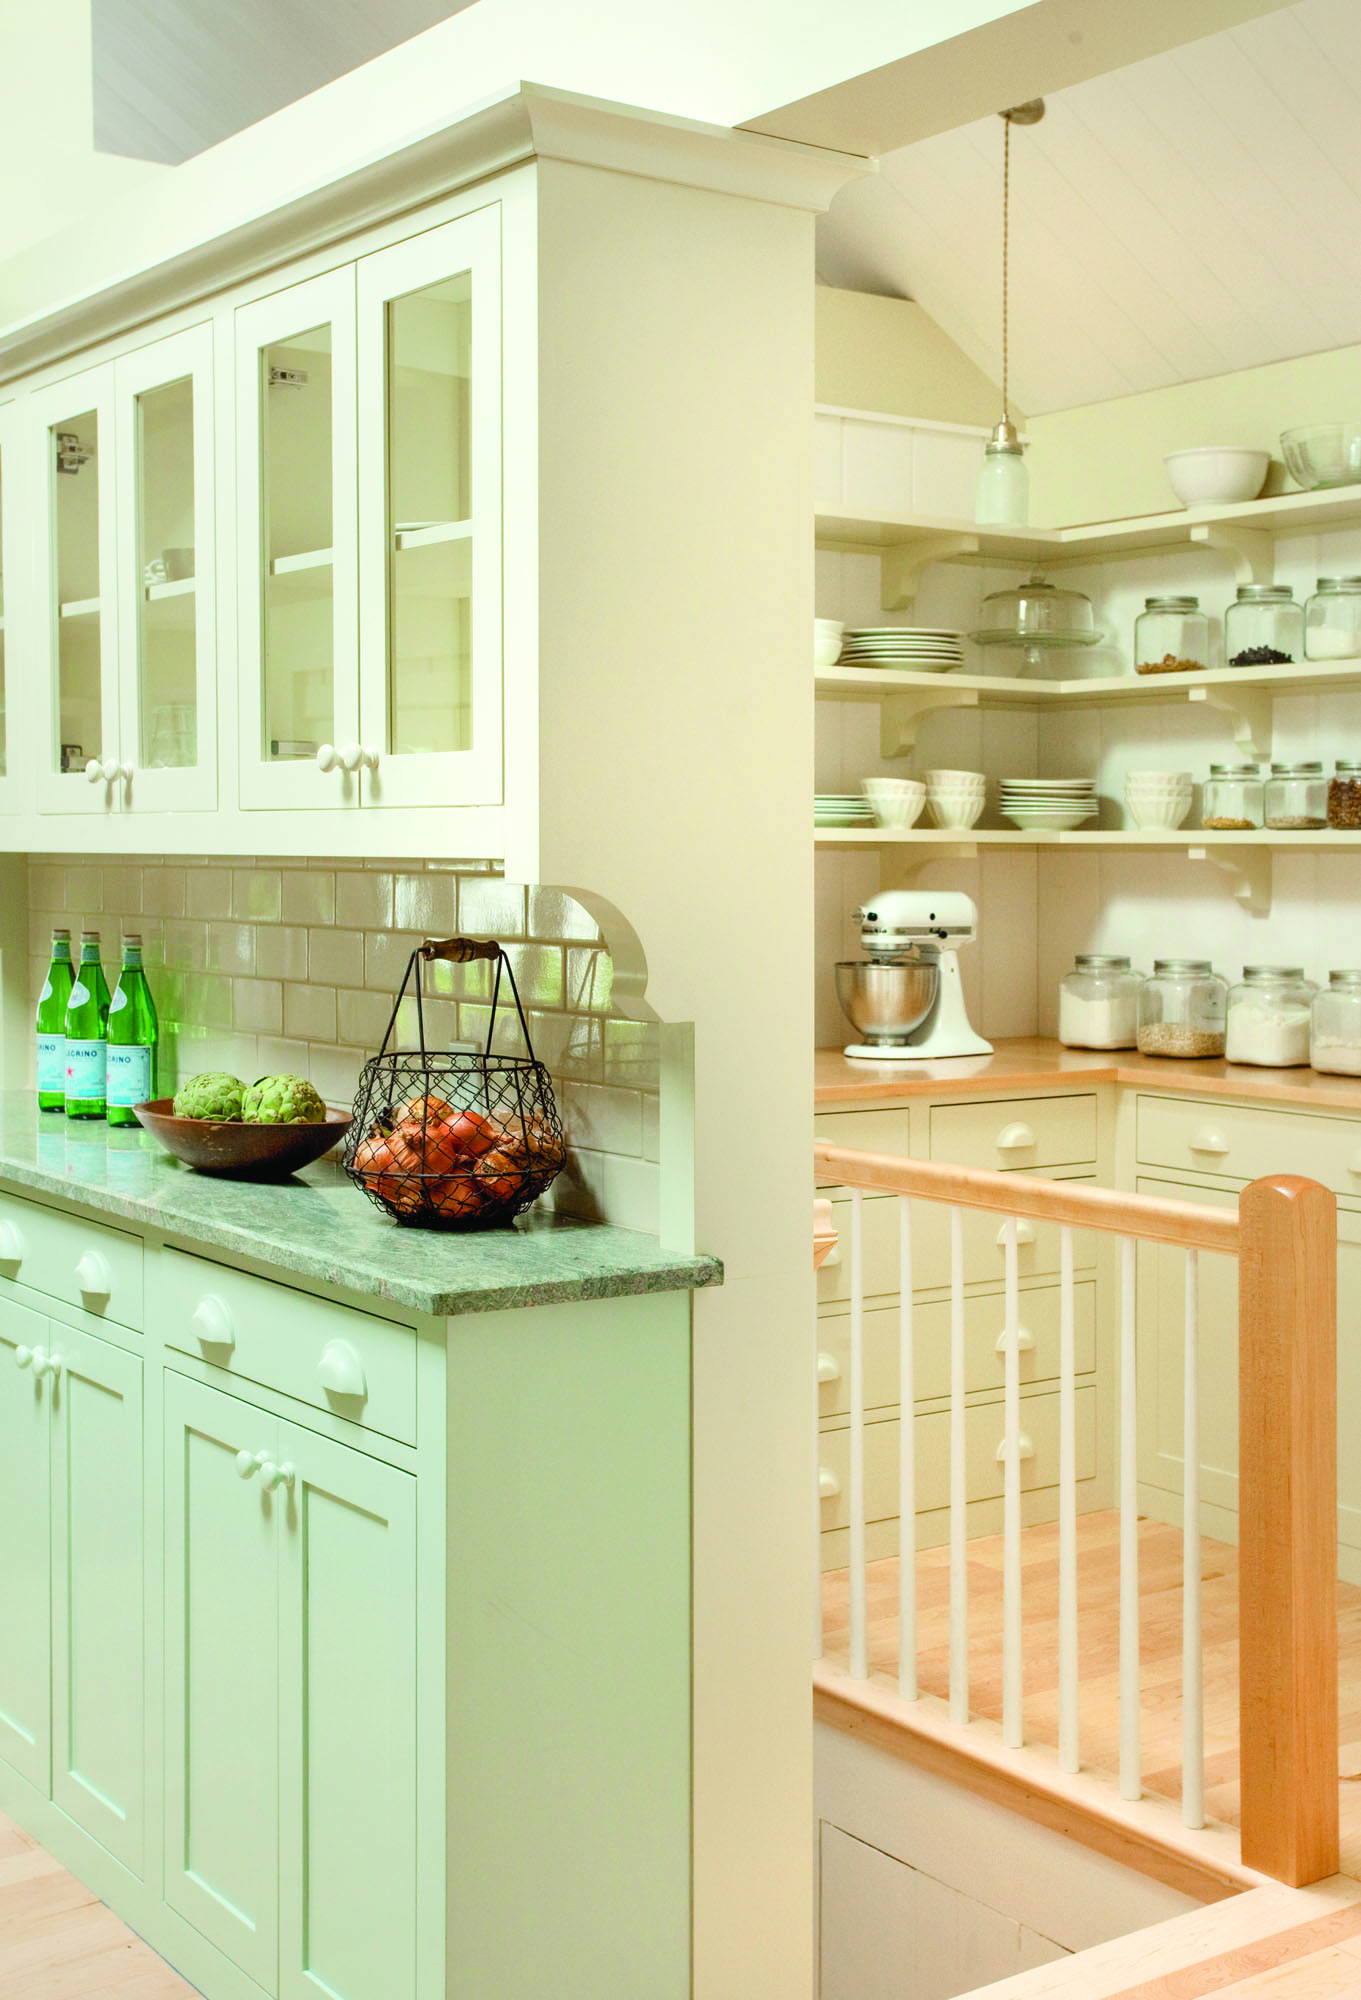 A farmhouse pantry tucks behind the kitchen; the stairway leads down to a new laundry room.